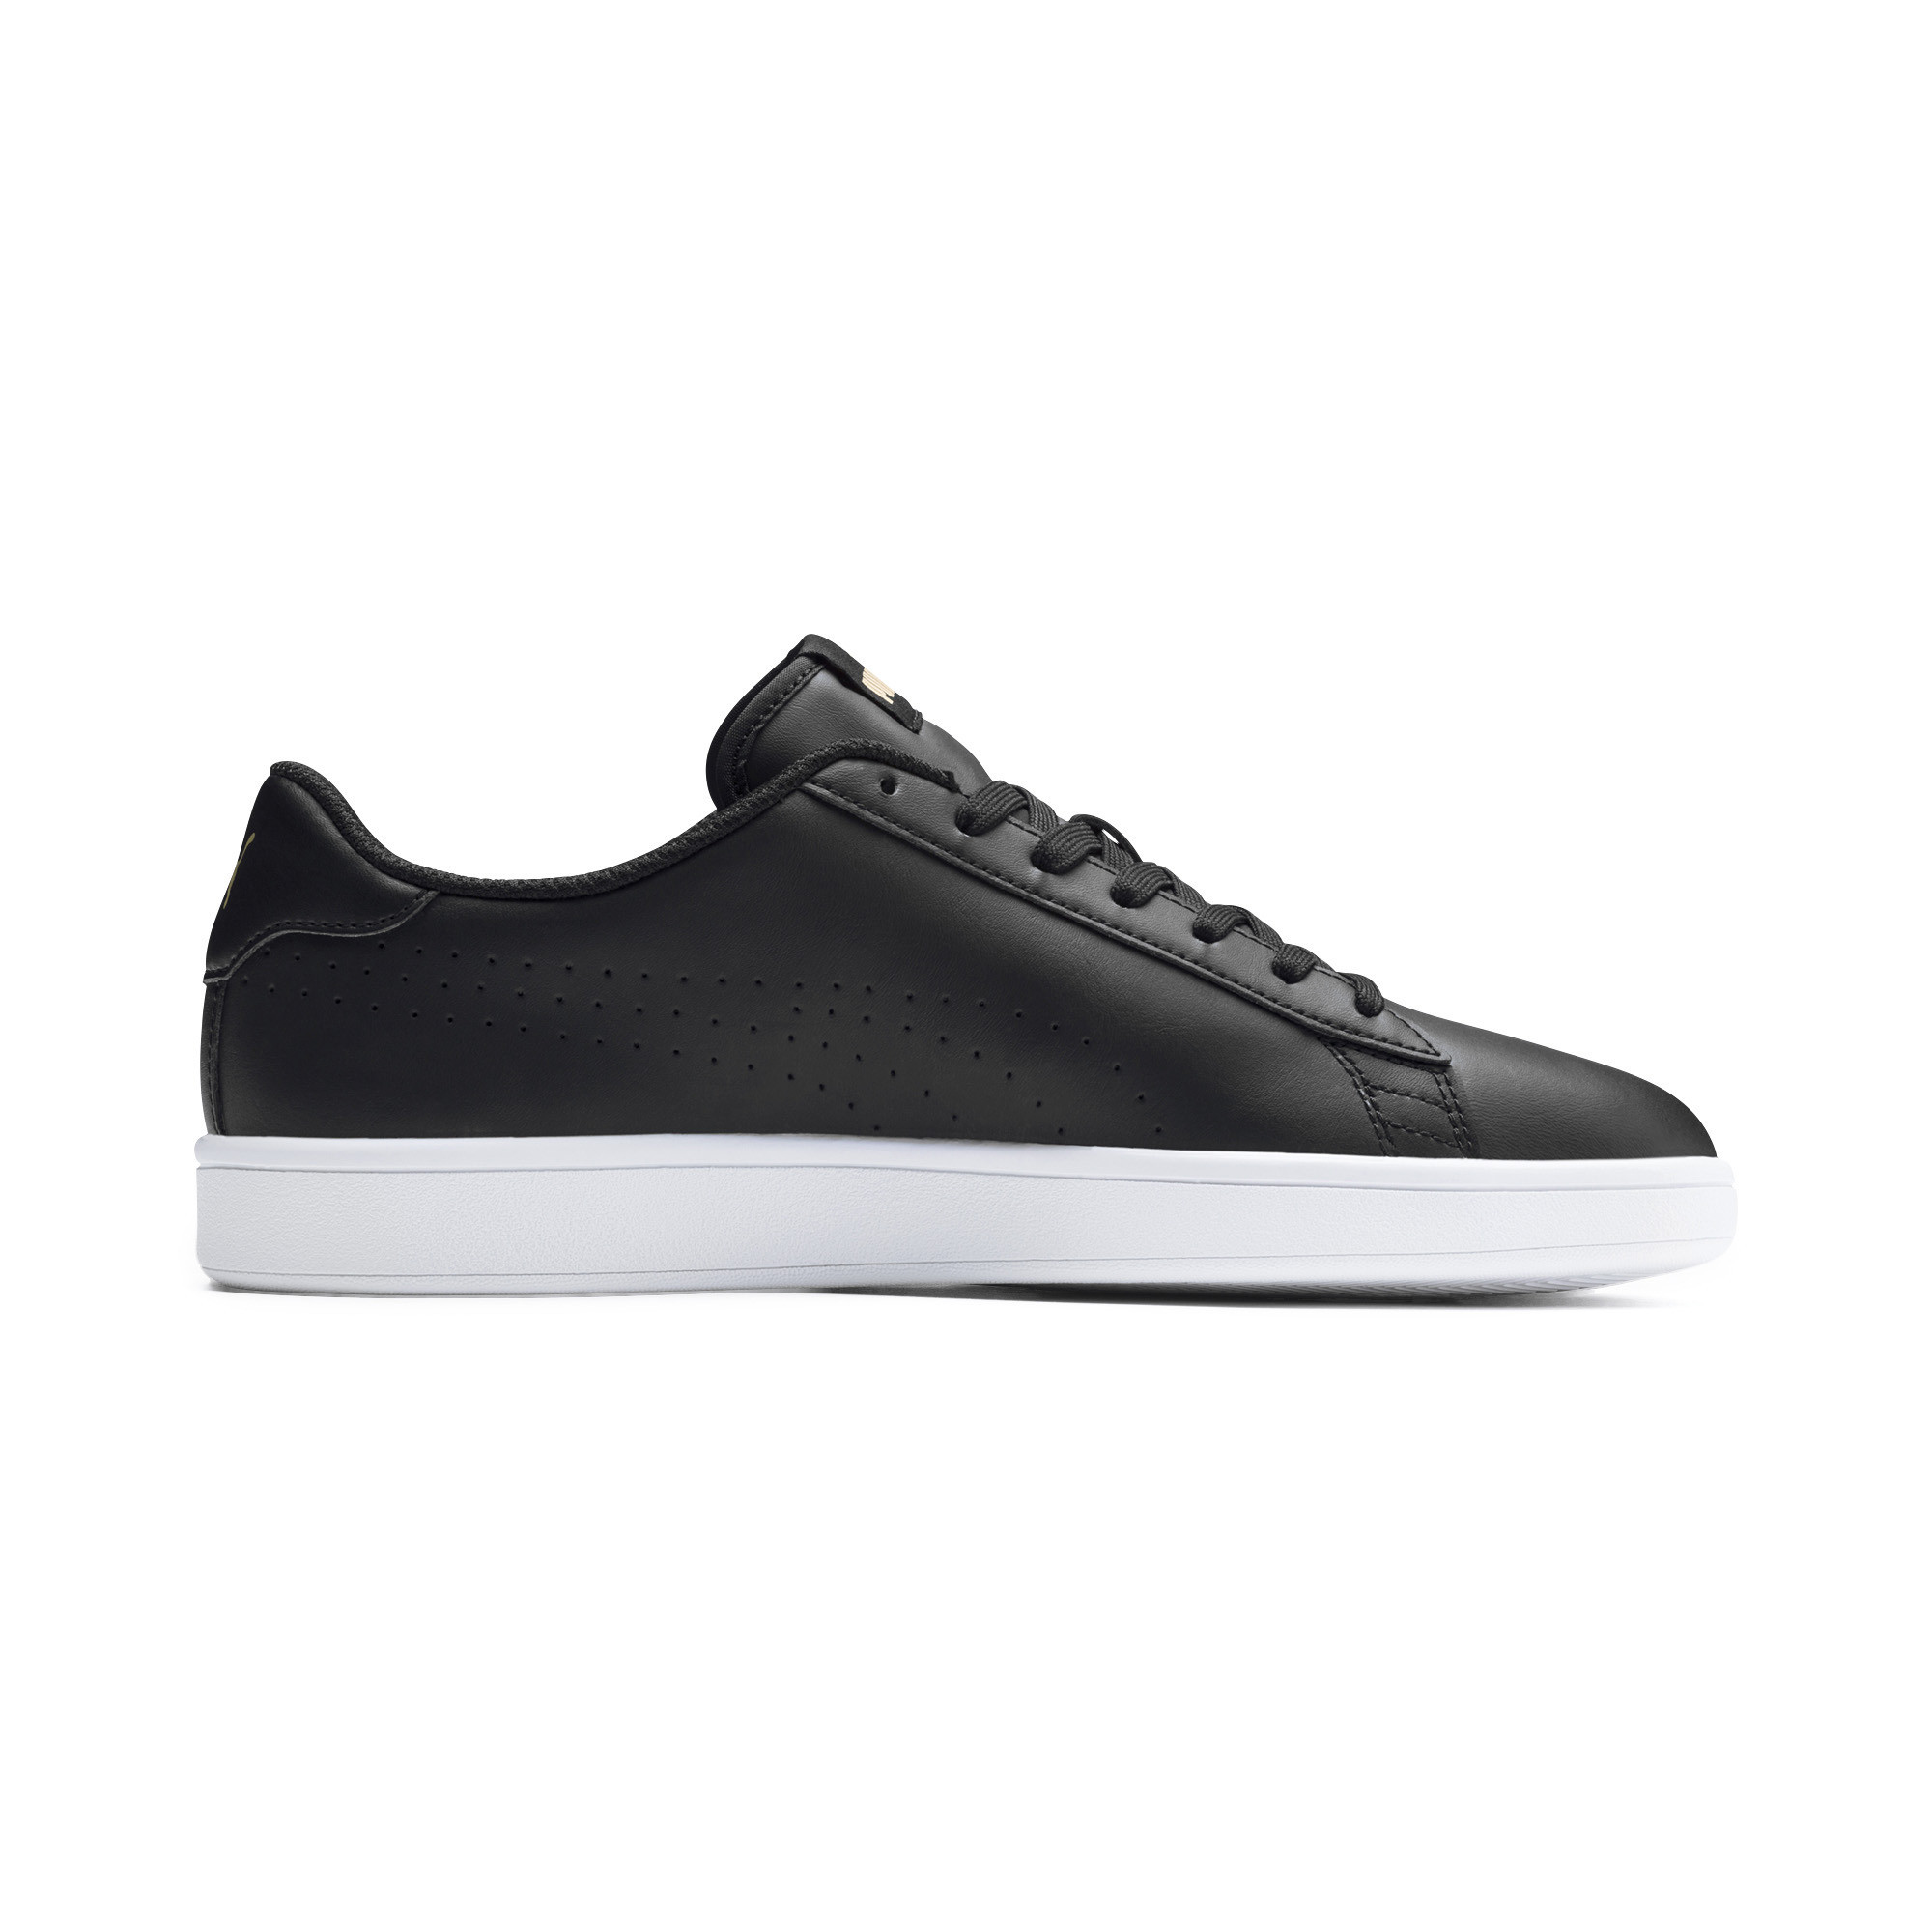 PUMA-PUMA-Smash-v2-Leather-Perf-Sneakers-Men-Shoe-Basics miniatura 18